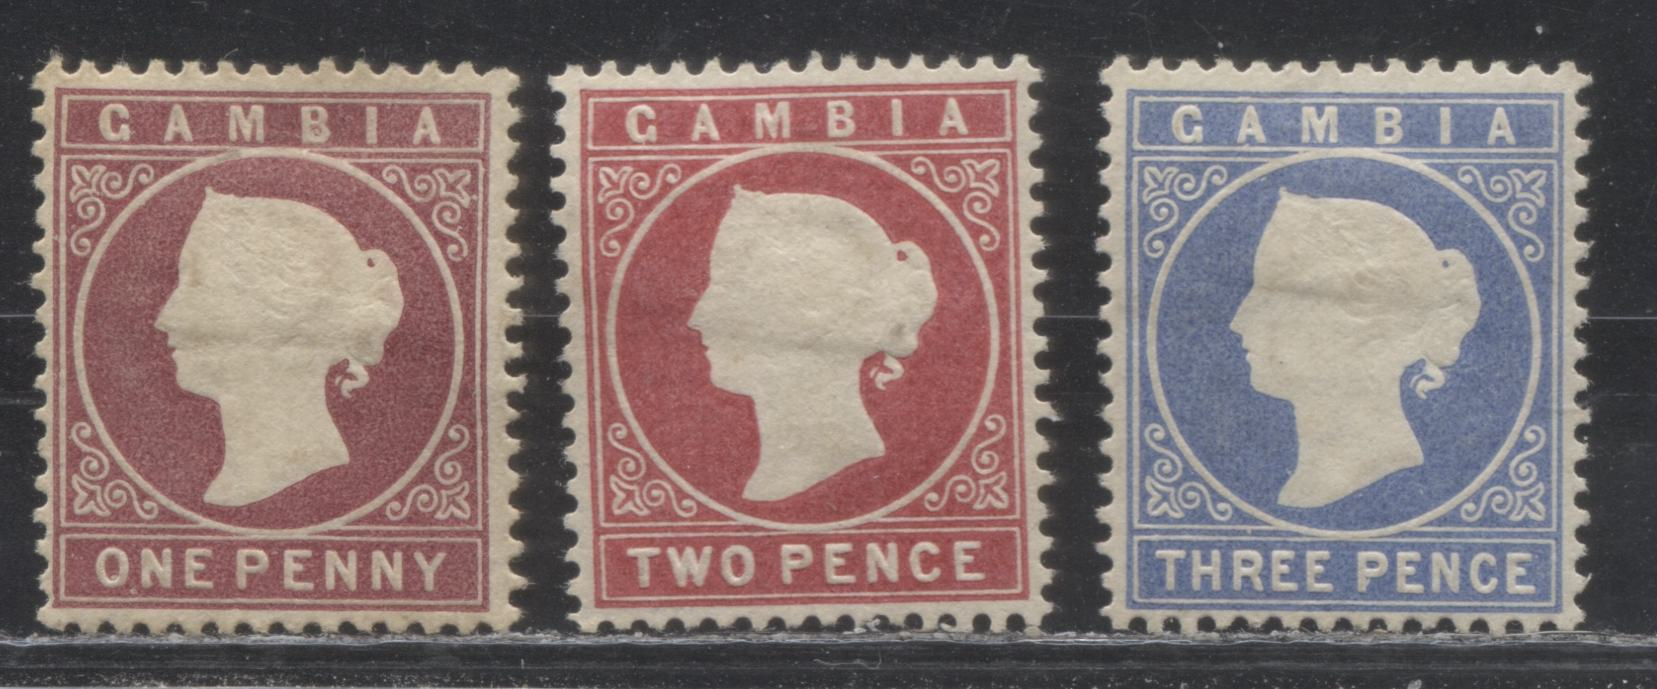 Gambia #6-8 (SG#12B-14cB) 1d Maroon - 3d Ultramarine Queen Victoria, 1880-1881 Cameo Issue, Watermarked Crown CC Upright, Comb Perf 14, Fine and VF Unused Examples